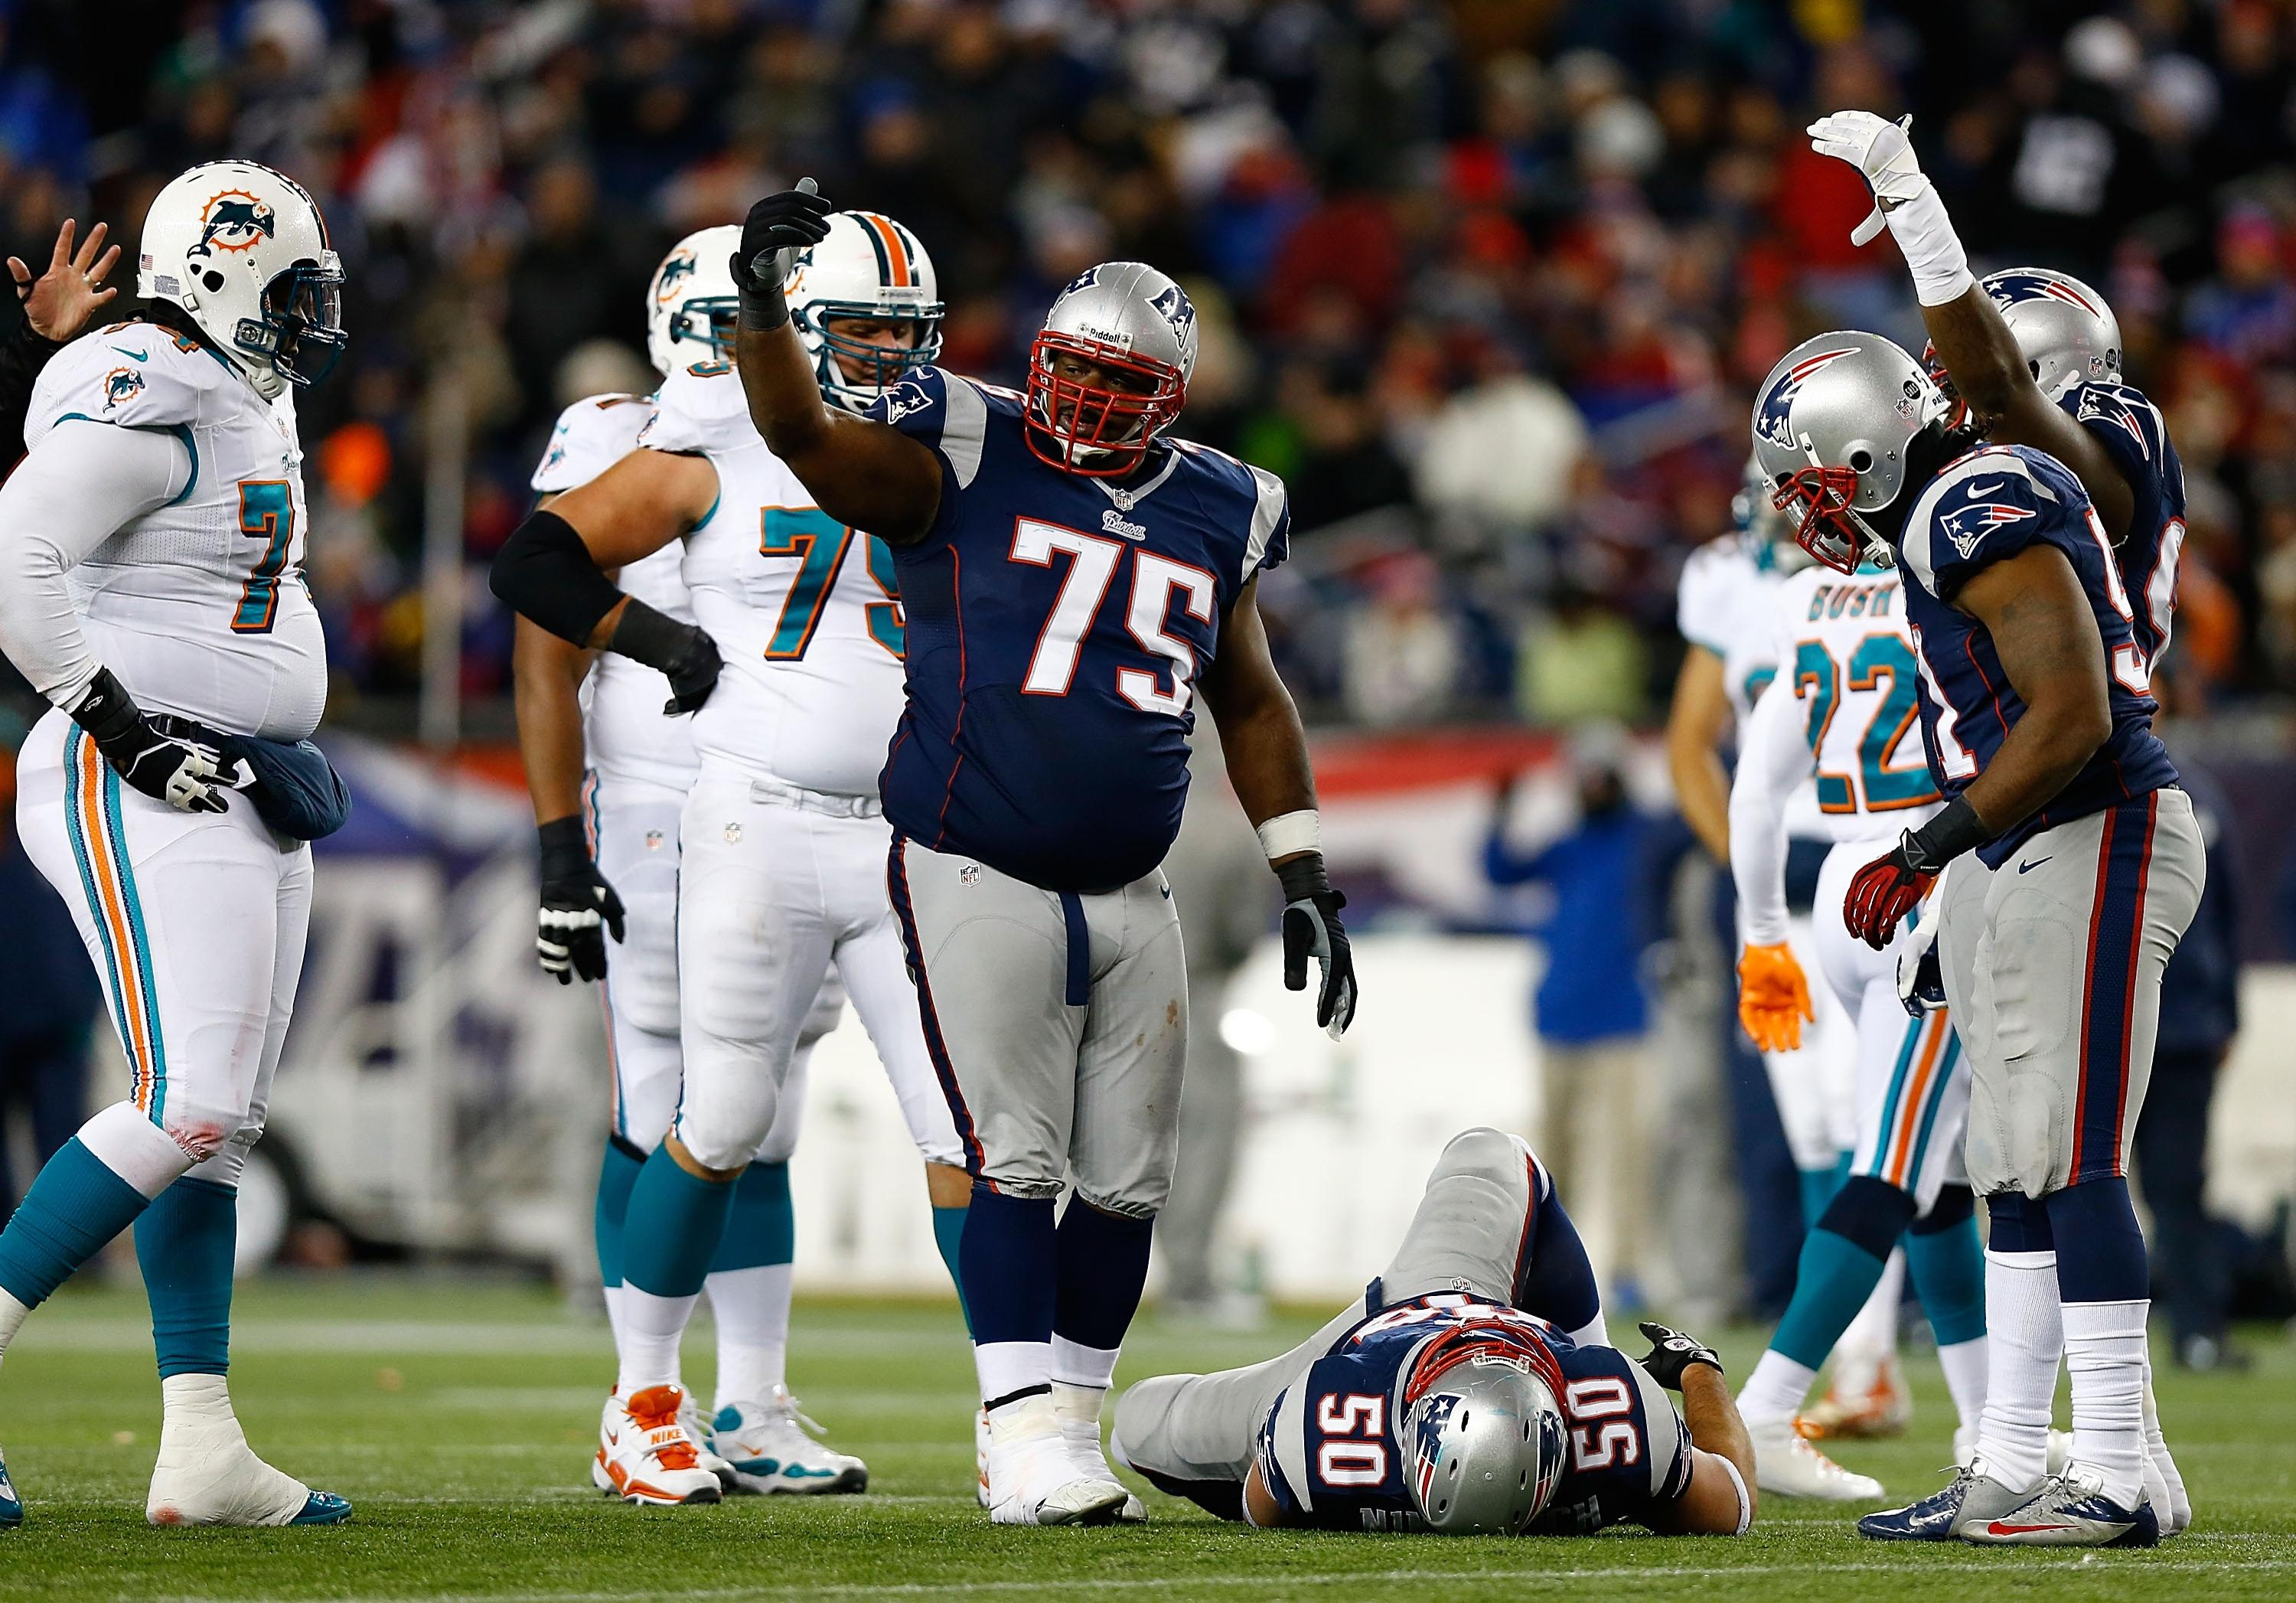 Vince Wilfork will remain with New England Patriots after agreeing